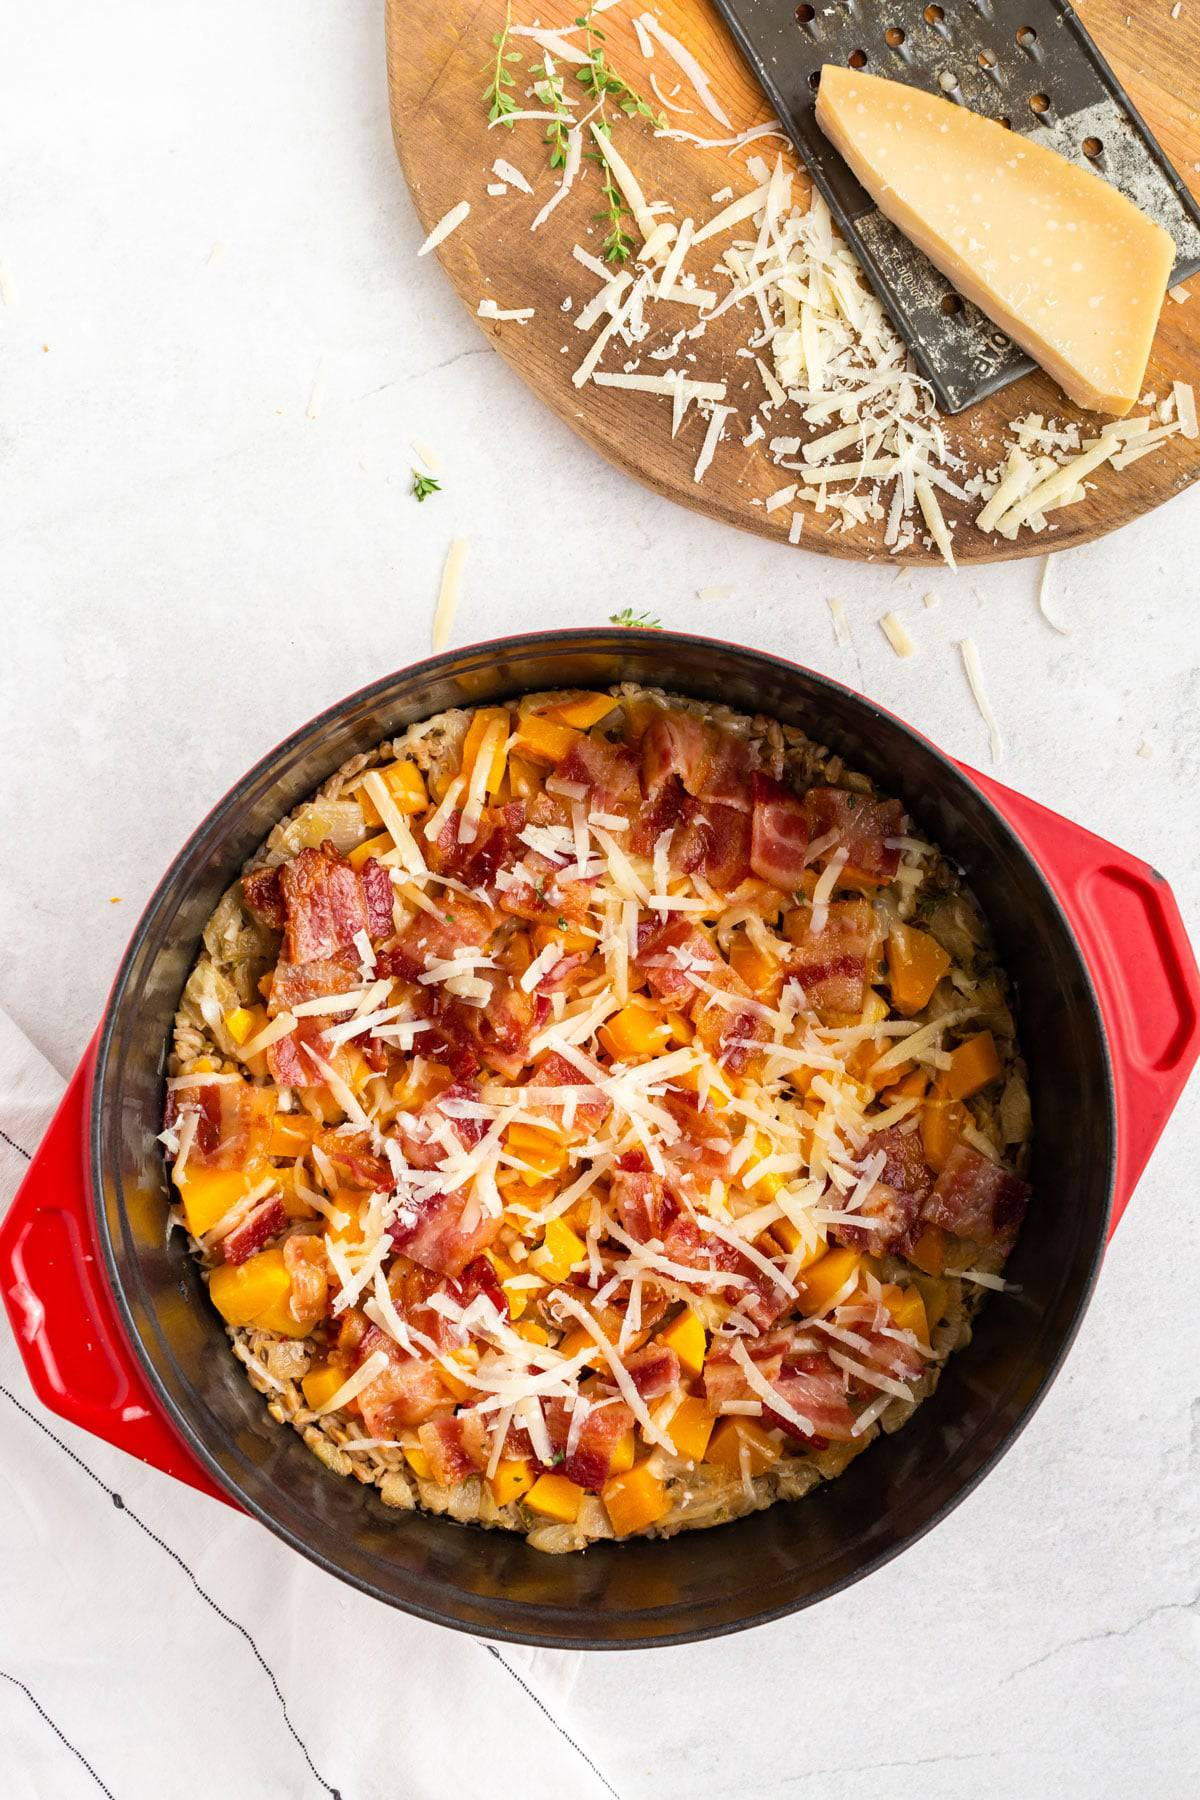 Grated Parmesan cheese over a casserole